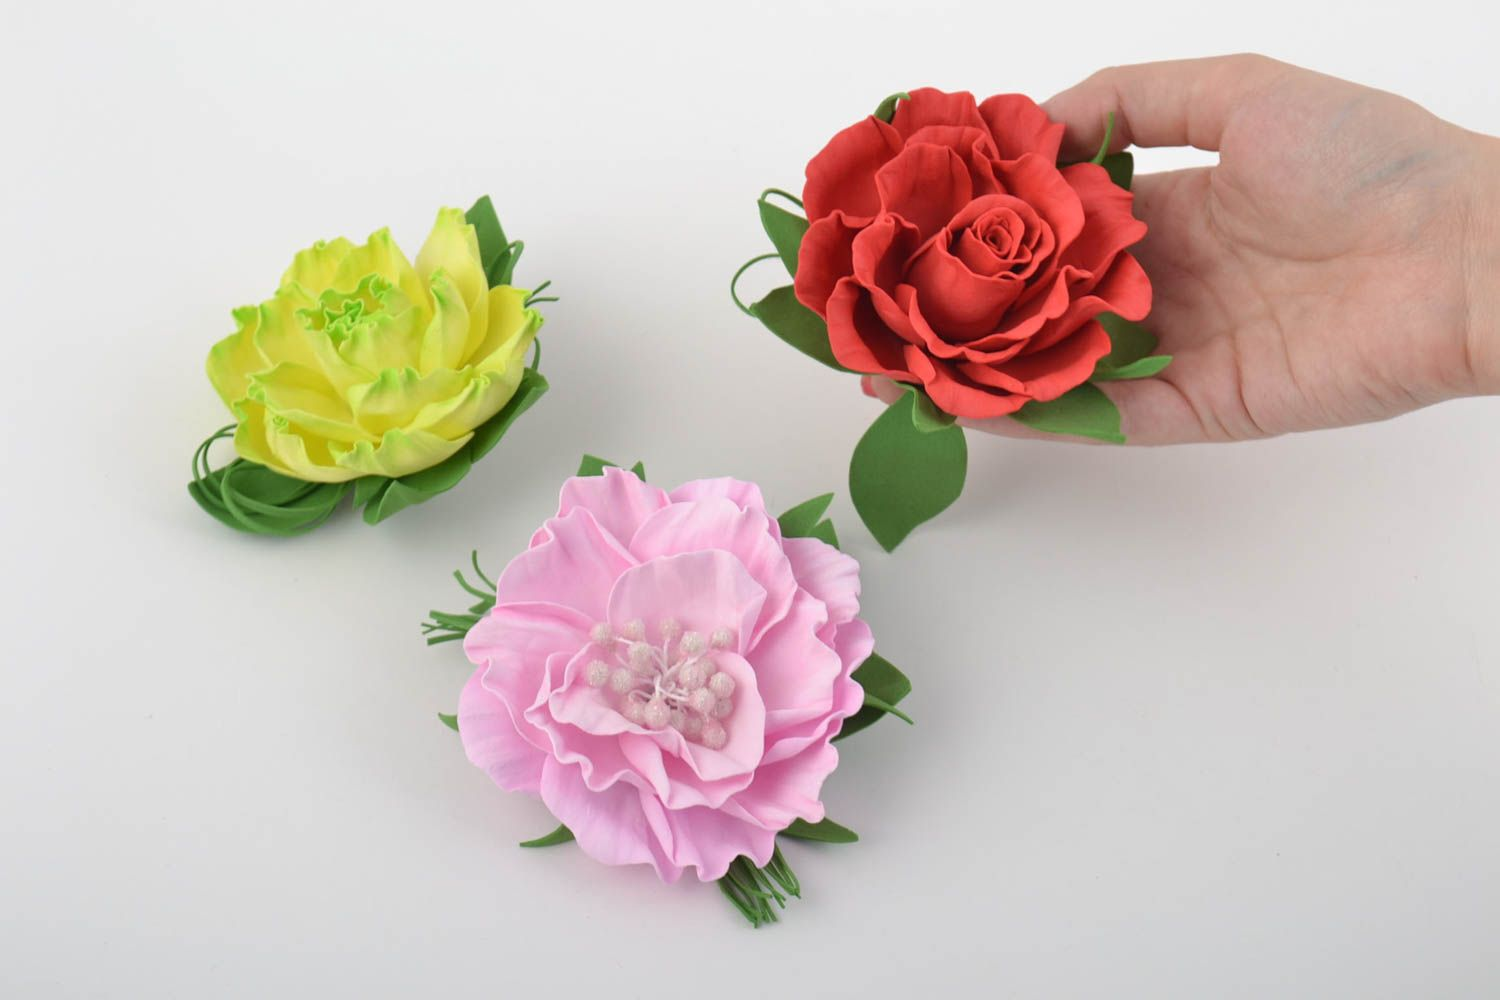 Handmade flower brooches flower hair clips handcrafted jewelry women accessories photo 10